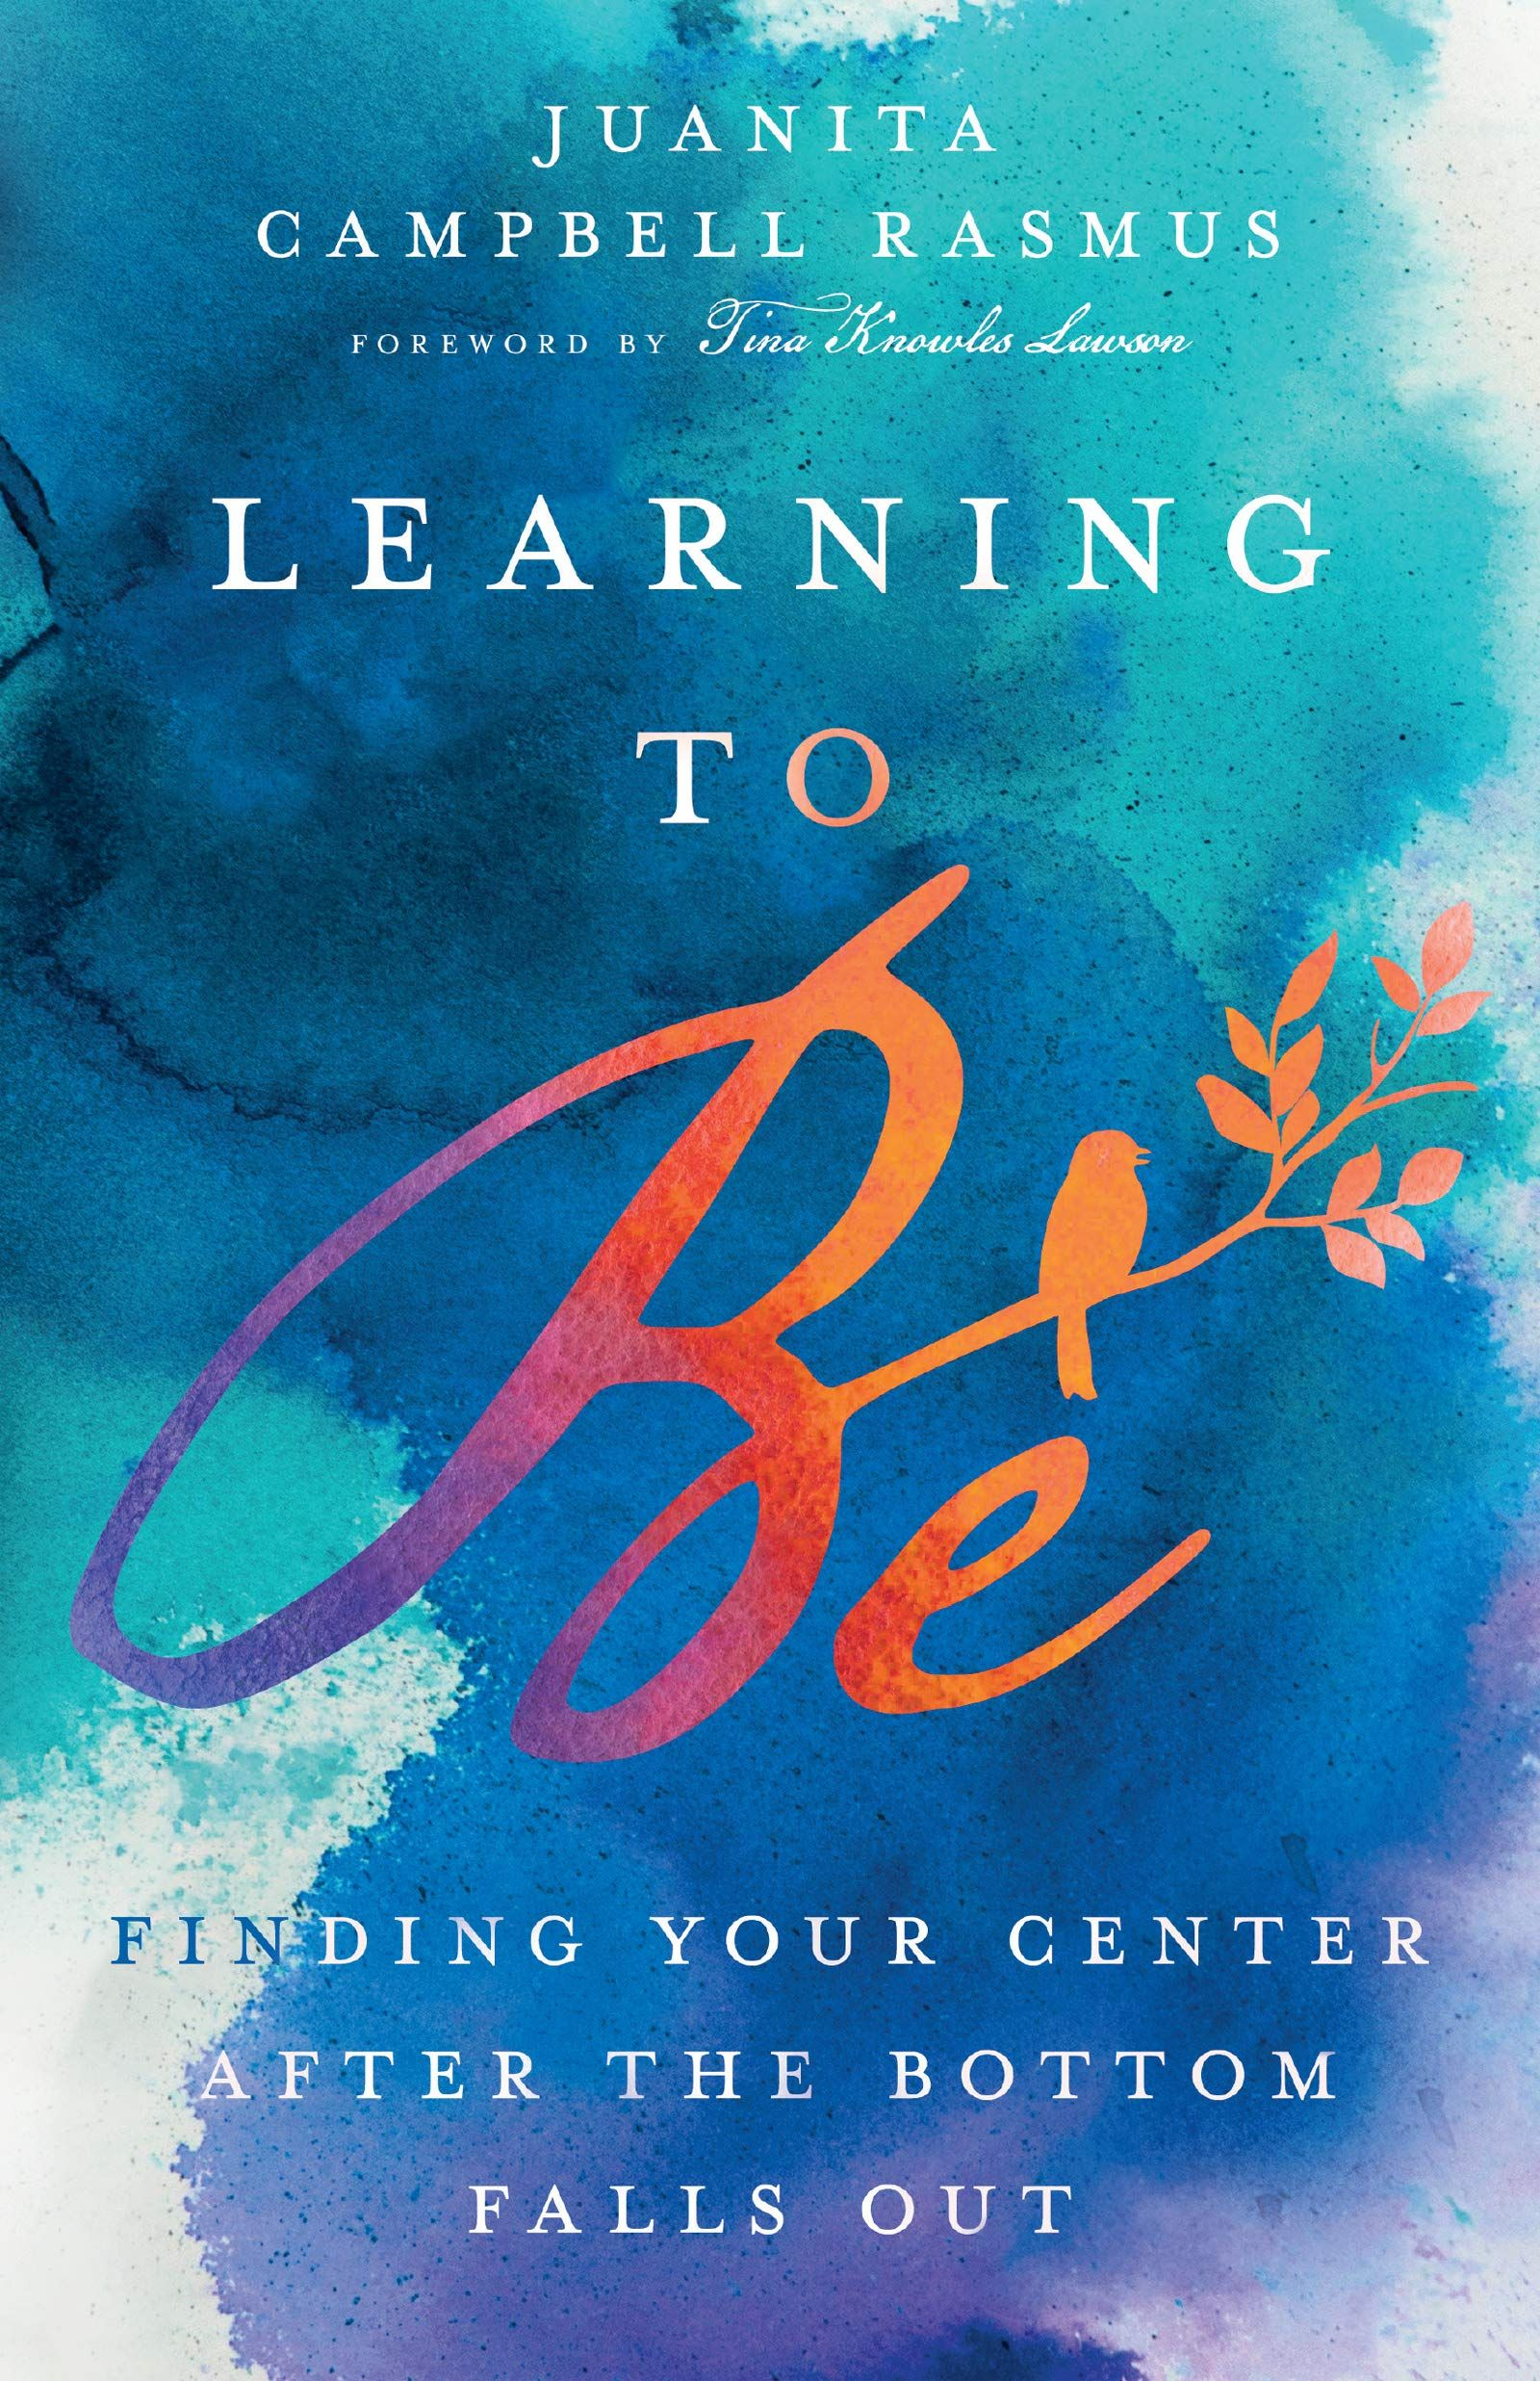 Pdf Learning To Be Finding Your Center After The Bottom Falls Out By Juanita Campbell Rasmus Transformative Books Books To Read Online Learning To Be